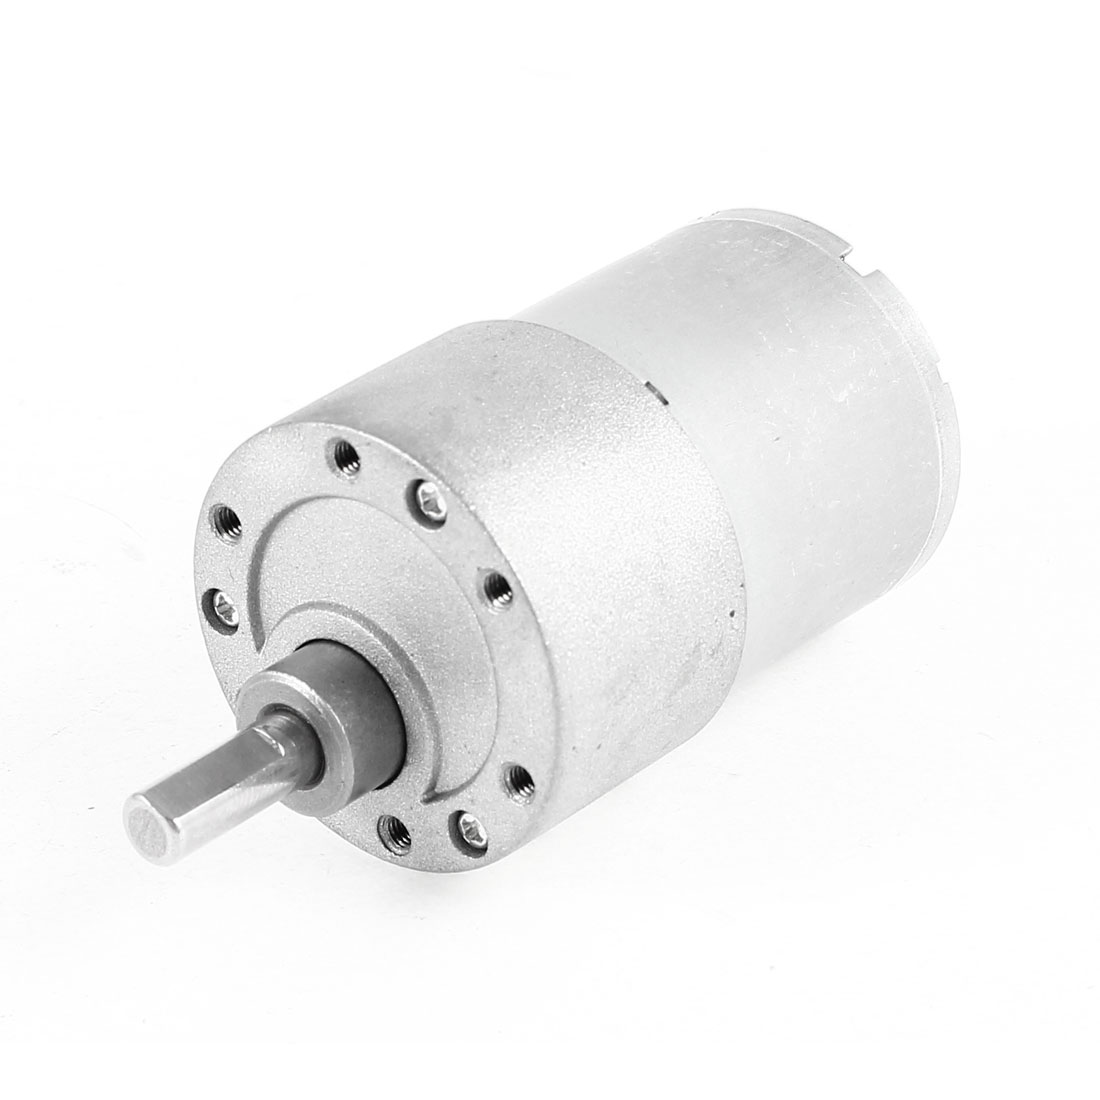 DC 24V 319RPM 5.9mm Shaft Electric Gear Box Speed Reduce Micro Motor